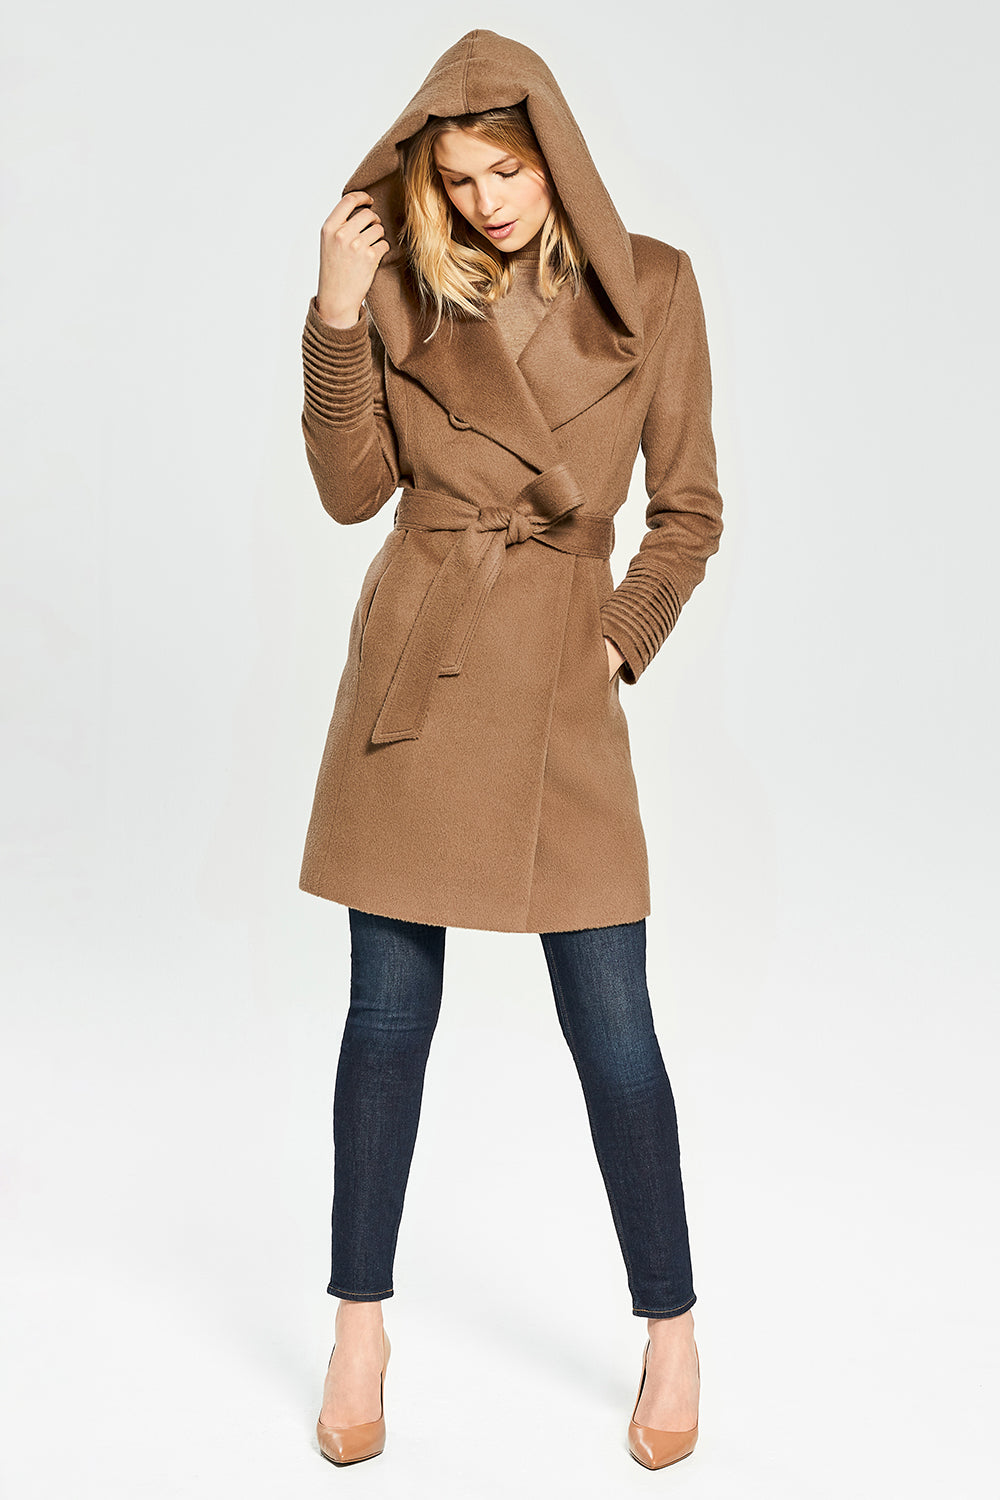 Sentaler Mid Length Hooded Wrap Coat featured in Baby Alpaca and available in Dark Camel. Seen from front.